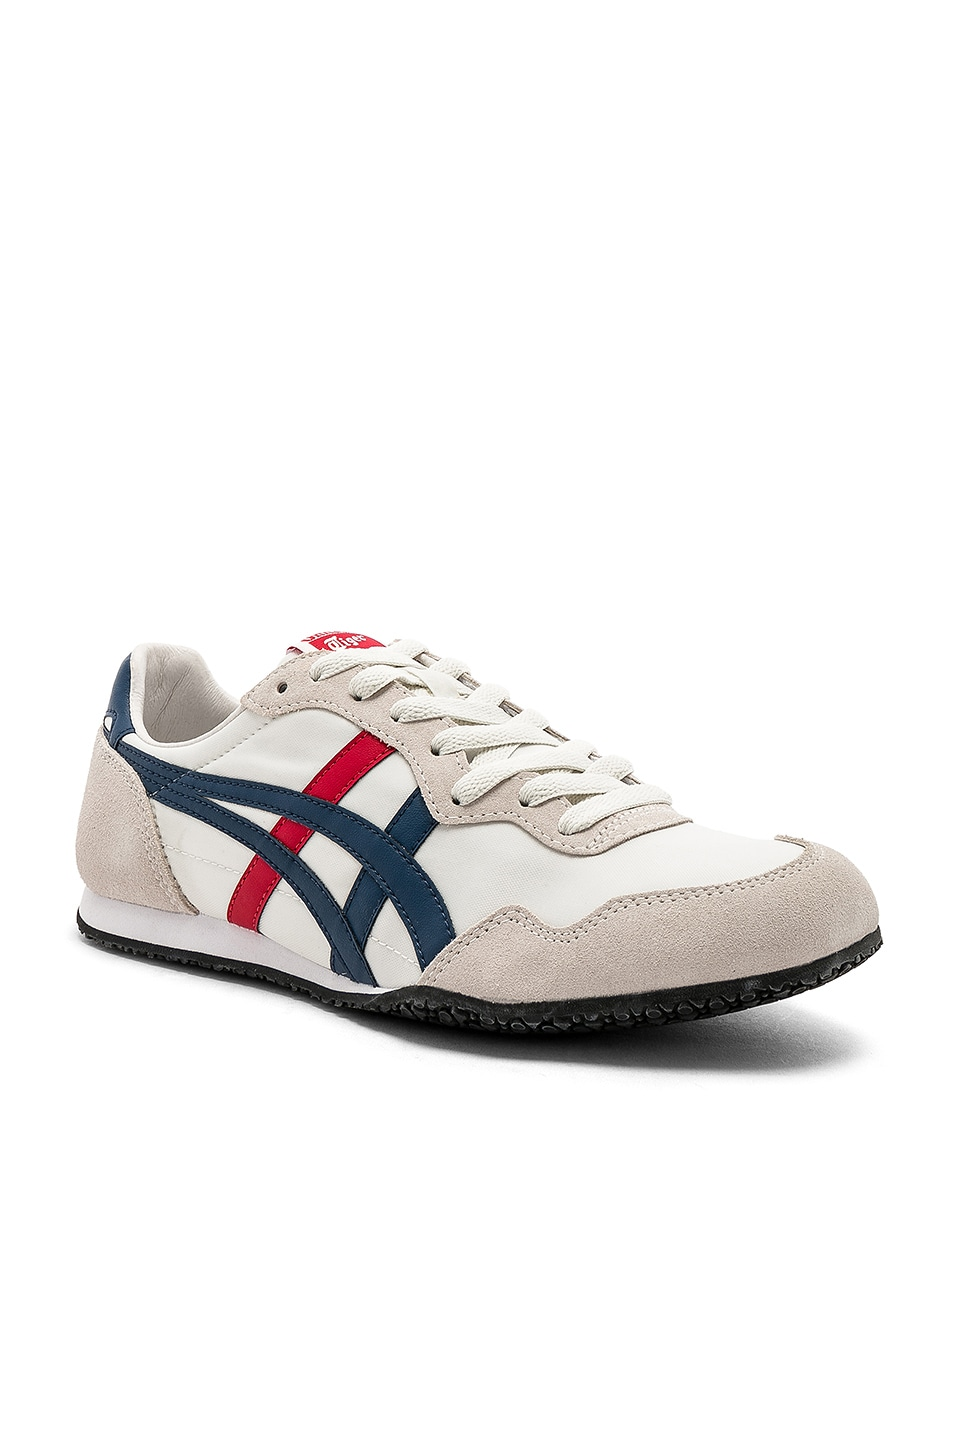 Onitsuka Tiger Serrano in White & Mallard Blue